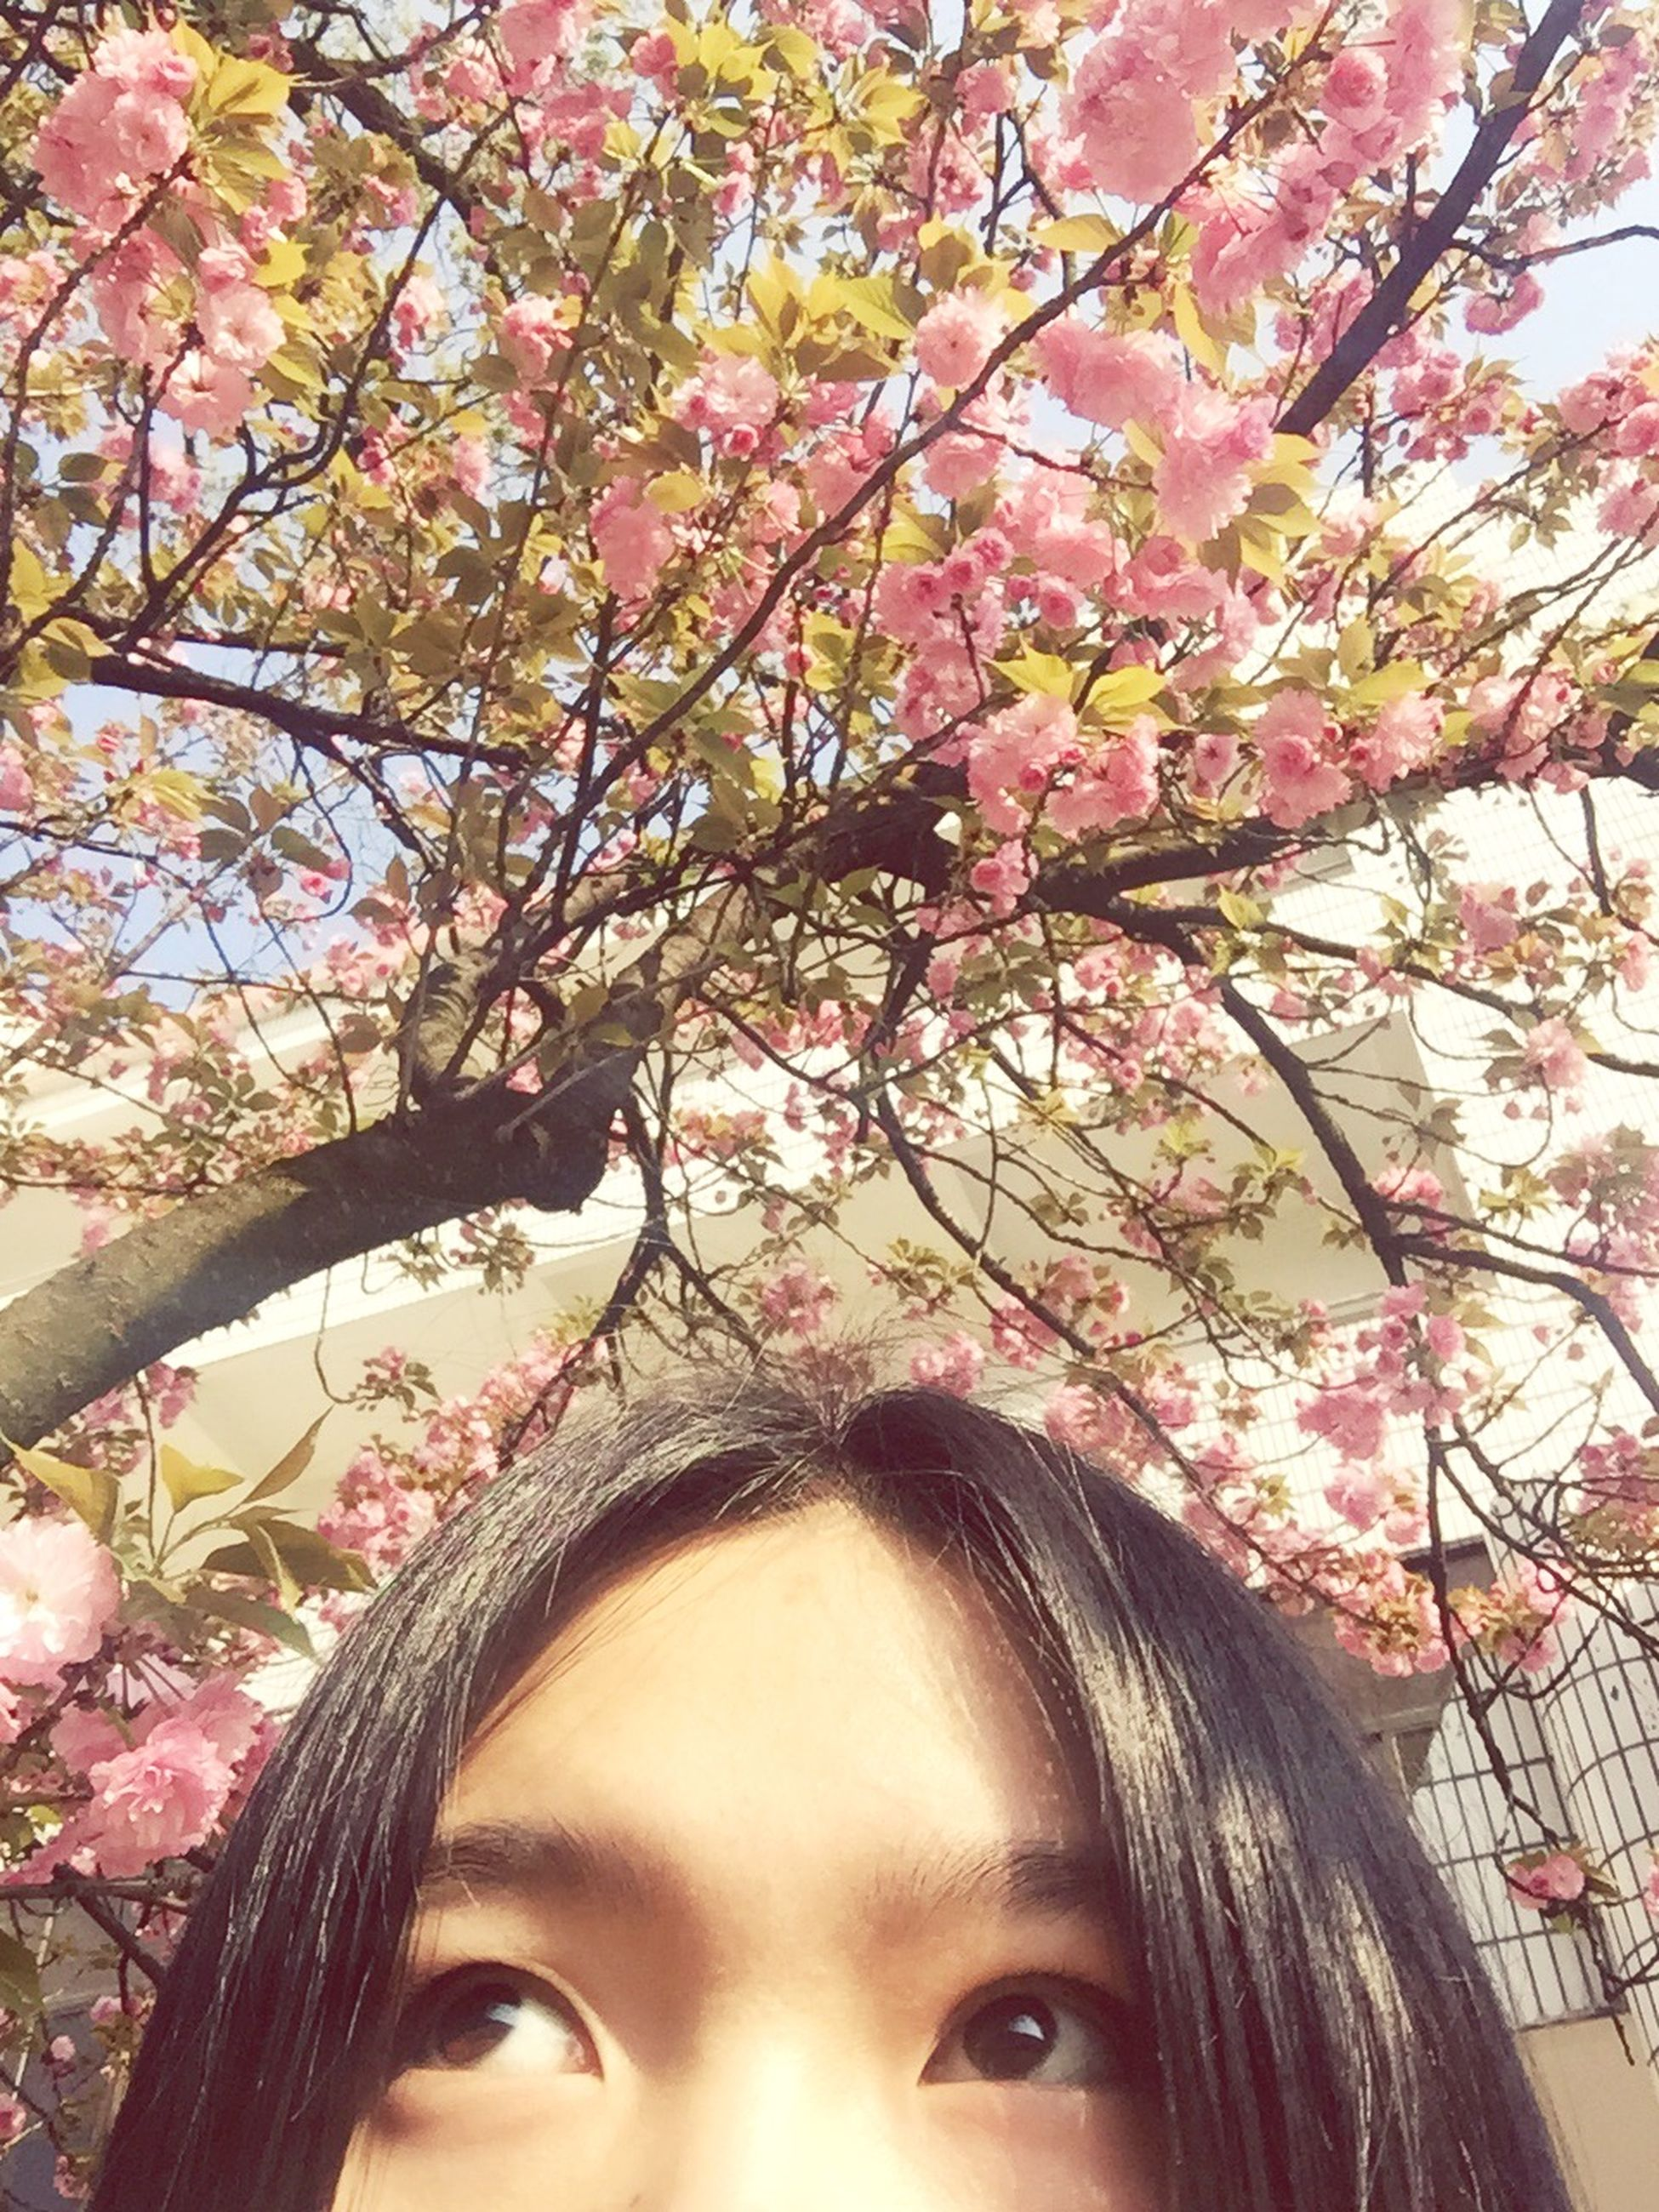 tree, flower, branch, pink color, low angle view, growth, nature, young adult, day, lifestyles, outdoors, beauty in nature, cherry blossom, cherry tree, close-up, young women, person, leisure activity